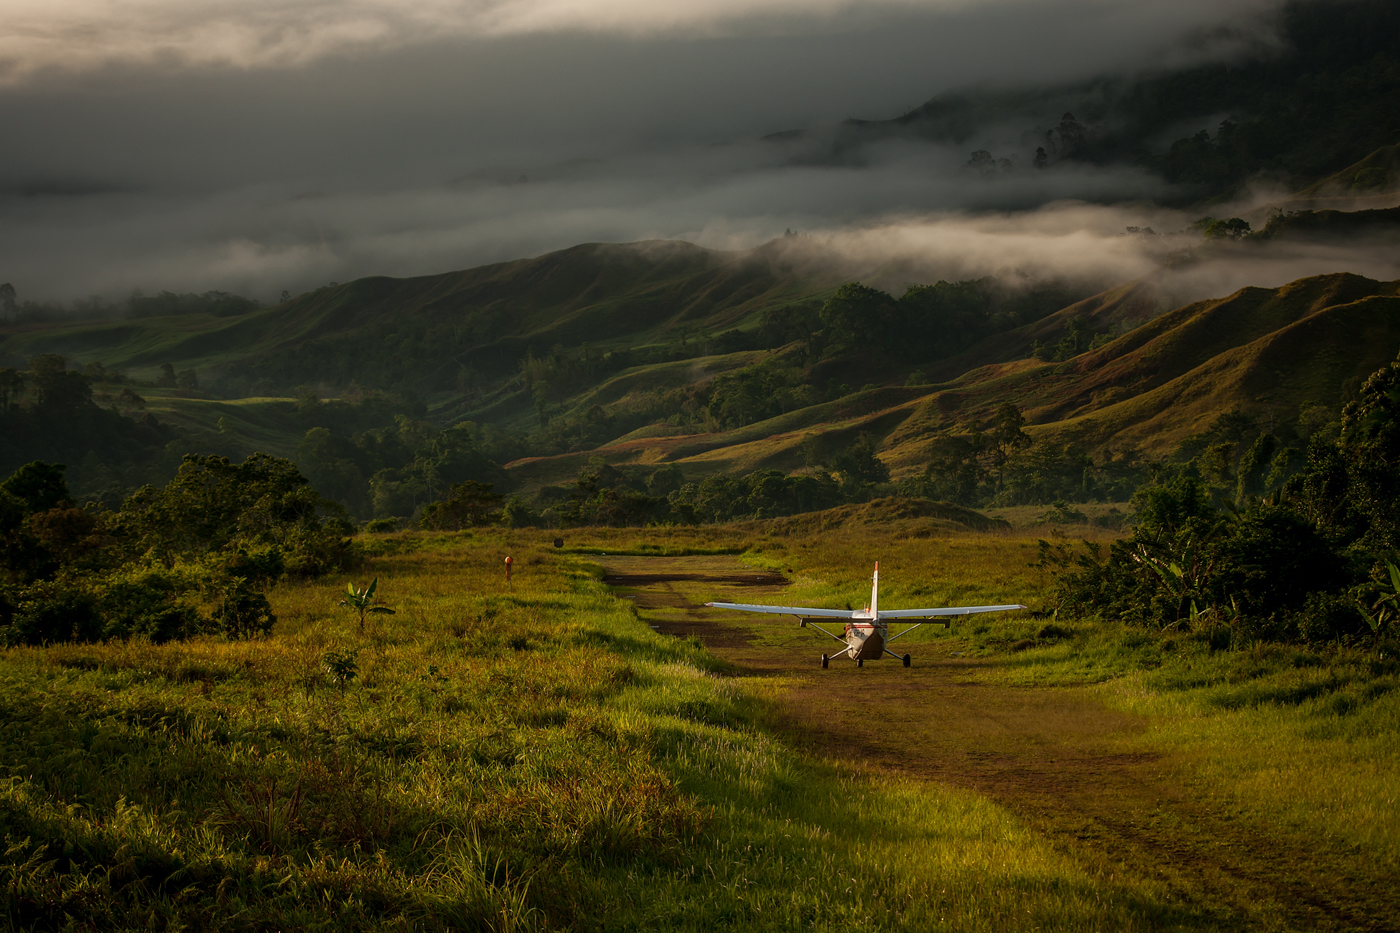 small plane on a mountainous runway